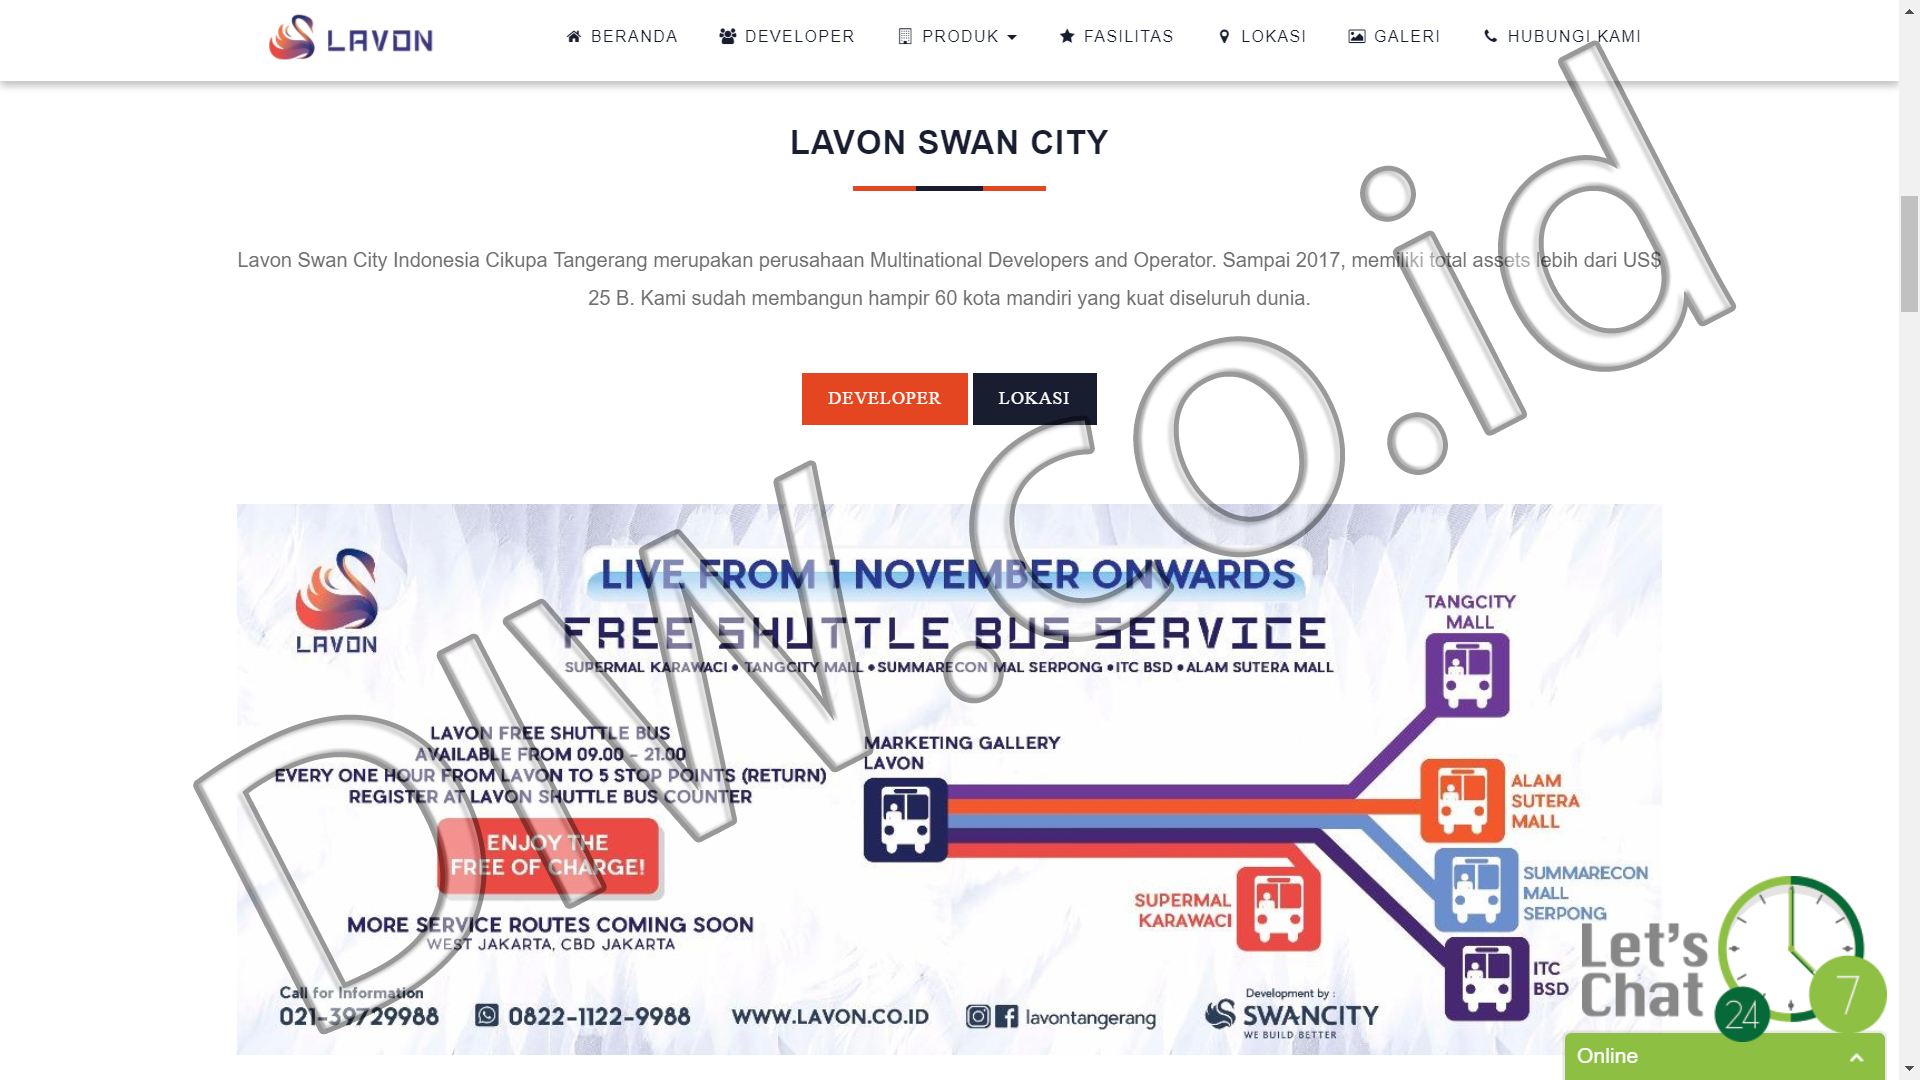 Portfolio 2 - Lavon New City - Andri Sunardi - Freelancer - Web Developer - CEO DIW.co.id